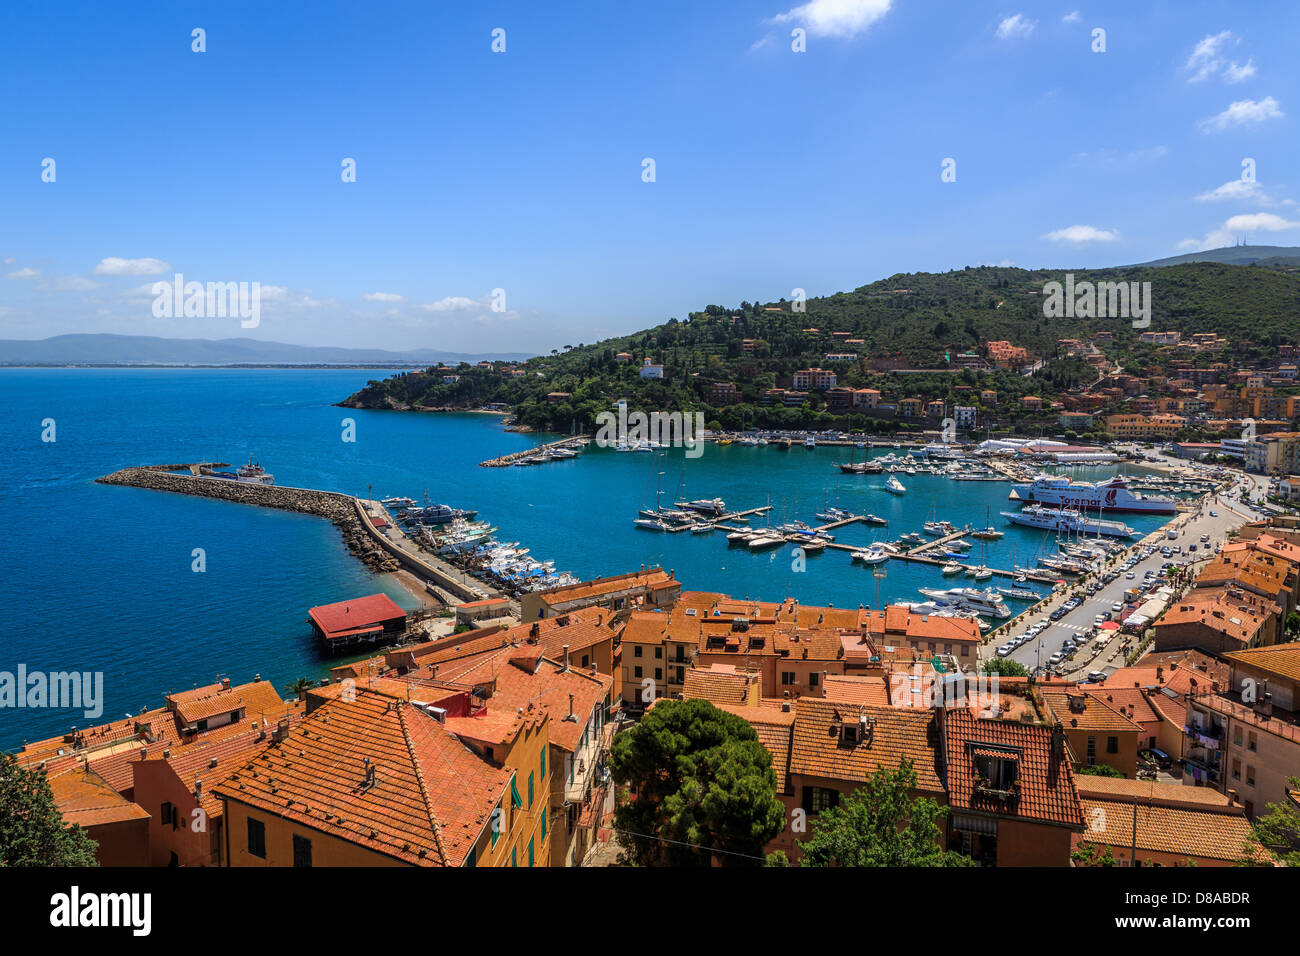 View of the sea front of Porto Santo Stefano, Monte Argentario, Maremma, Grosseto Province, Tuscany, Italy - Stock Image